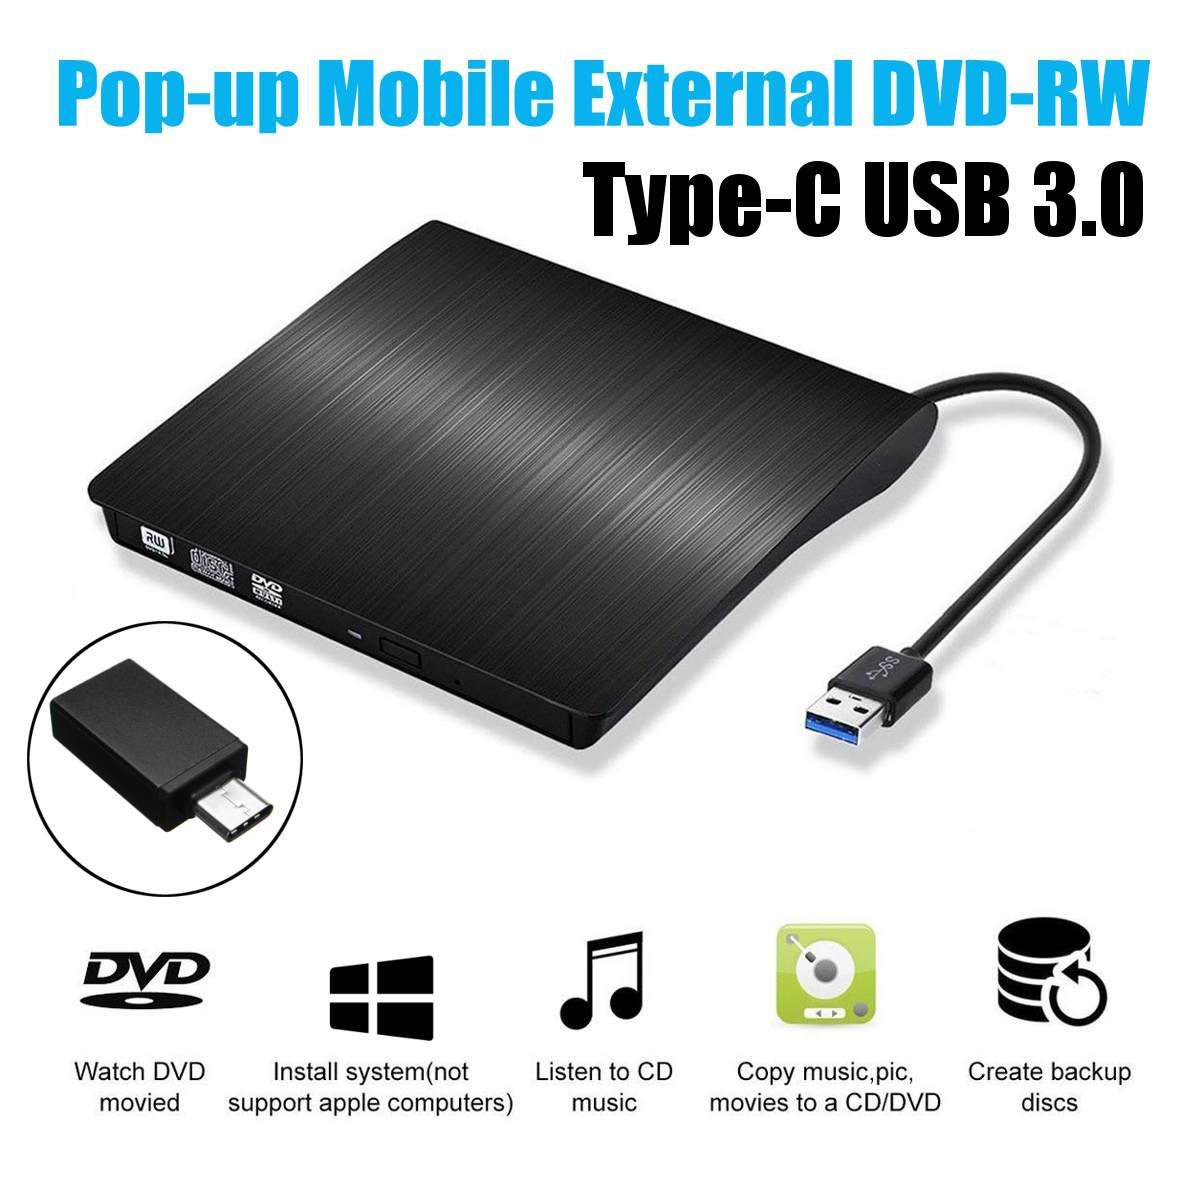 Type C USB 3.0 External DVD/CD/ VCD Burner RW SVCD Drive Player Optical Drive For Mac/PC/Apple Laptop/OS/Windows